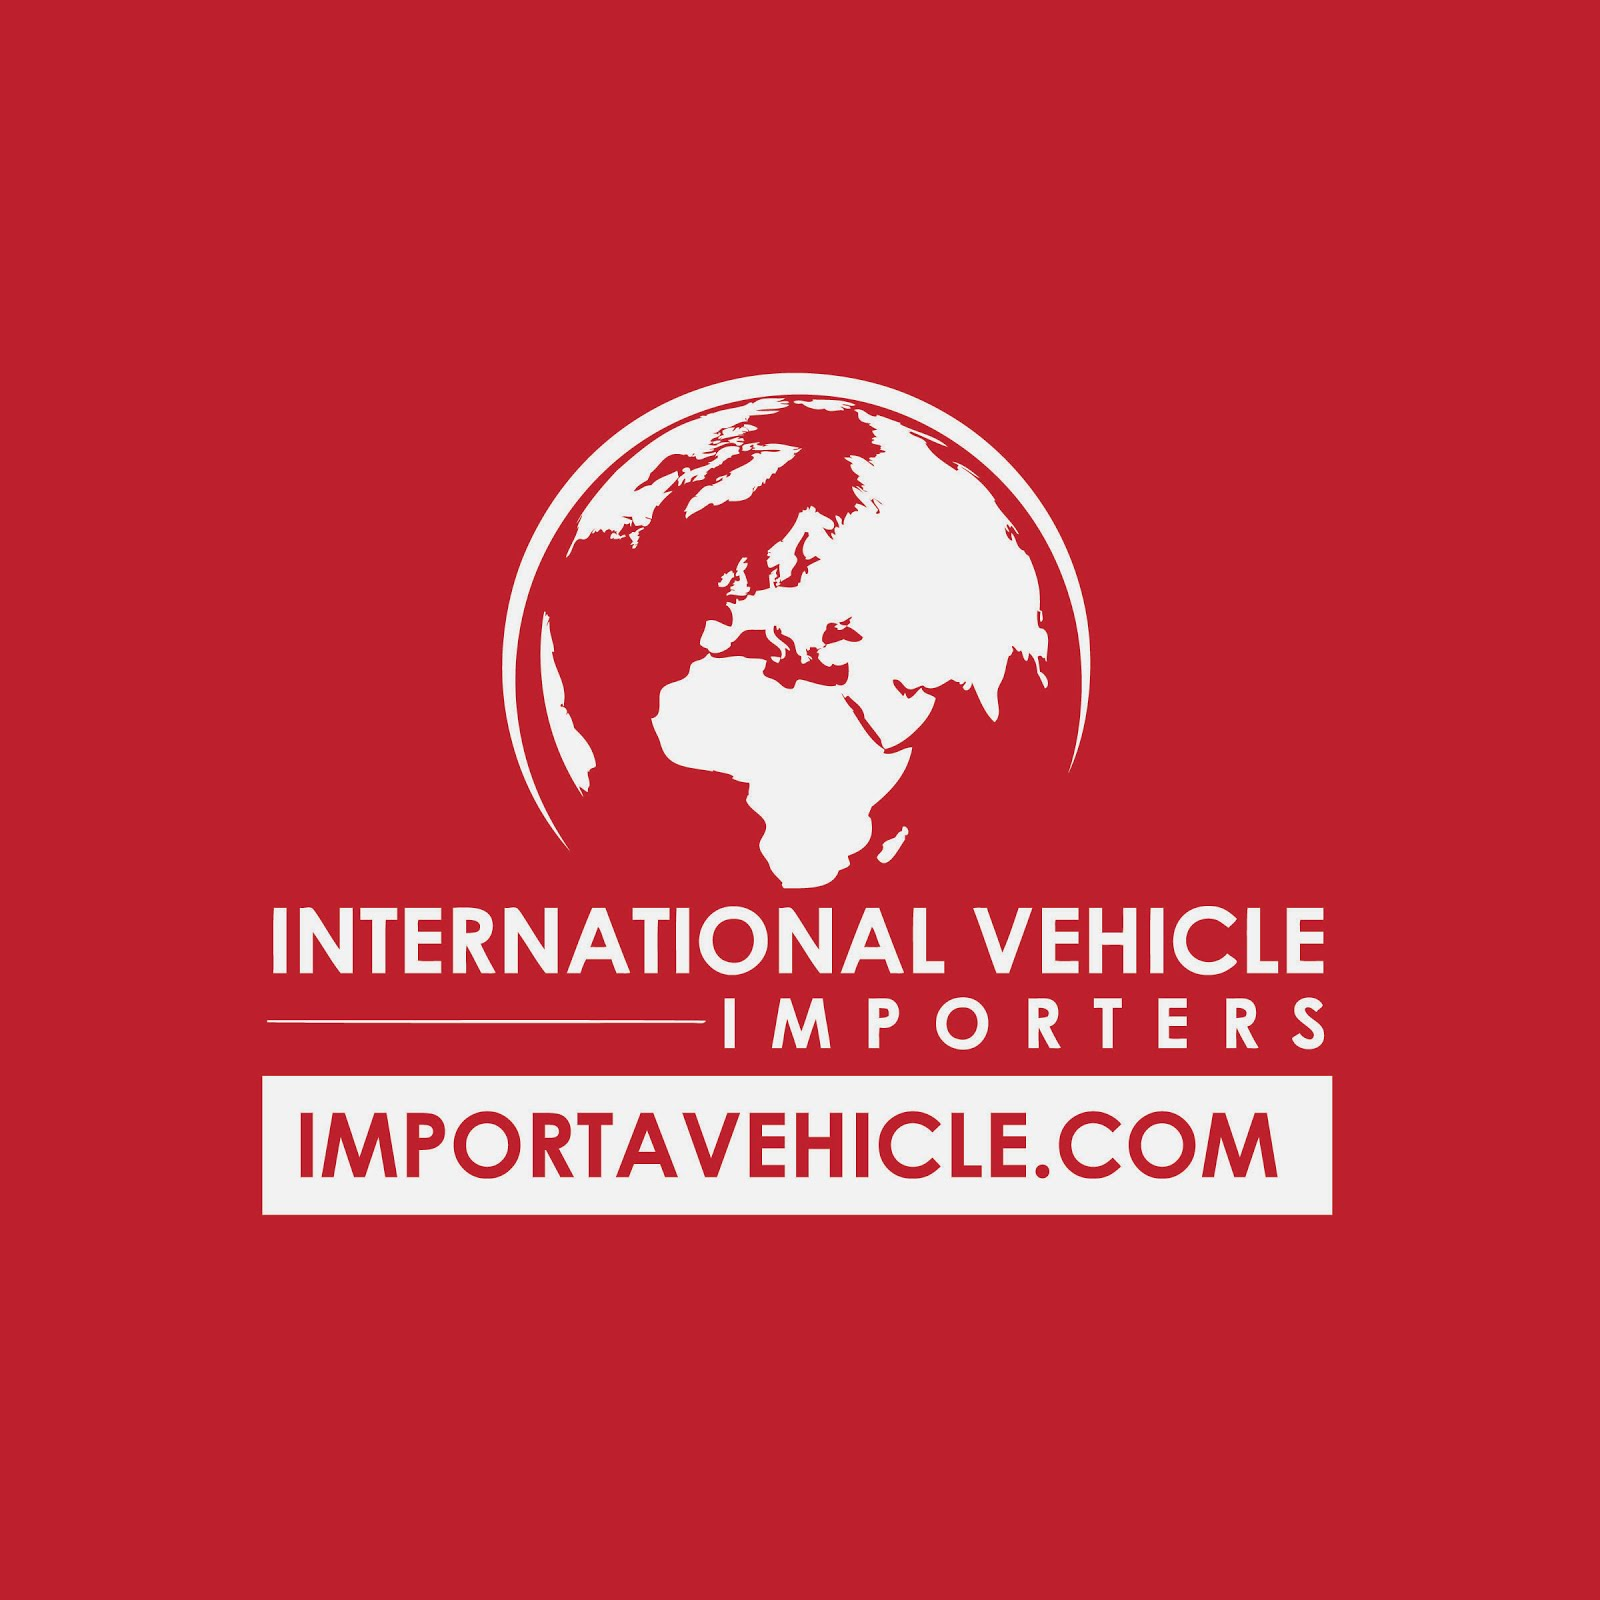 importavehicle.com